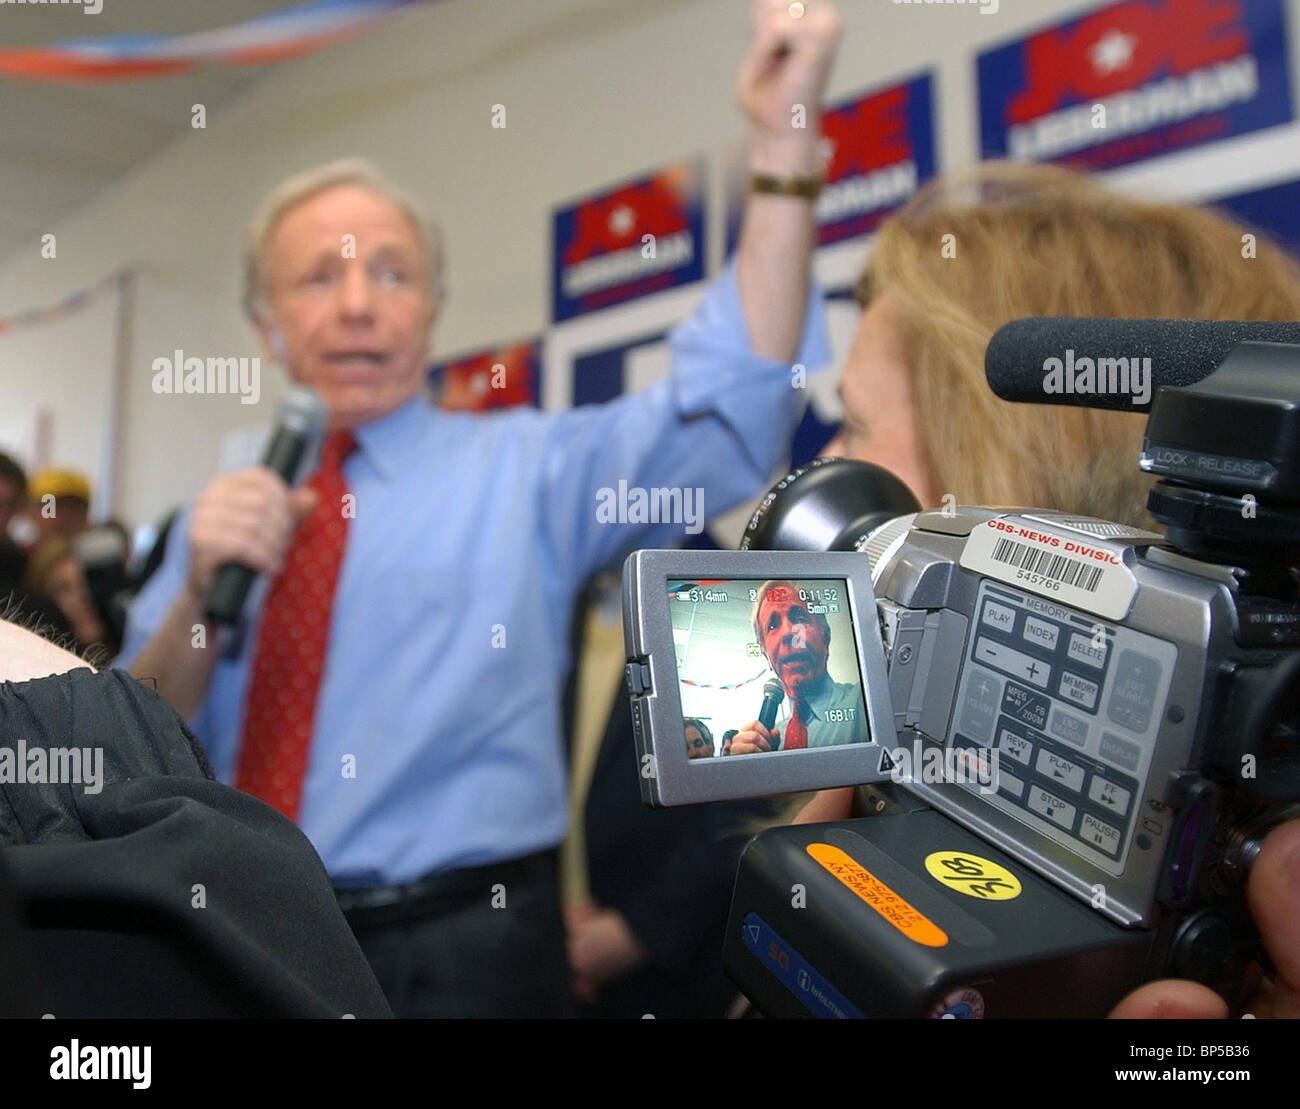 Senator Joe Lieberman of Connecticut shown in TV monitor as he ran for president in 2004 during the New Hampshire - Stock Image